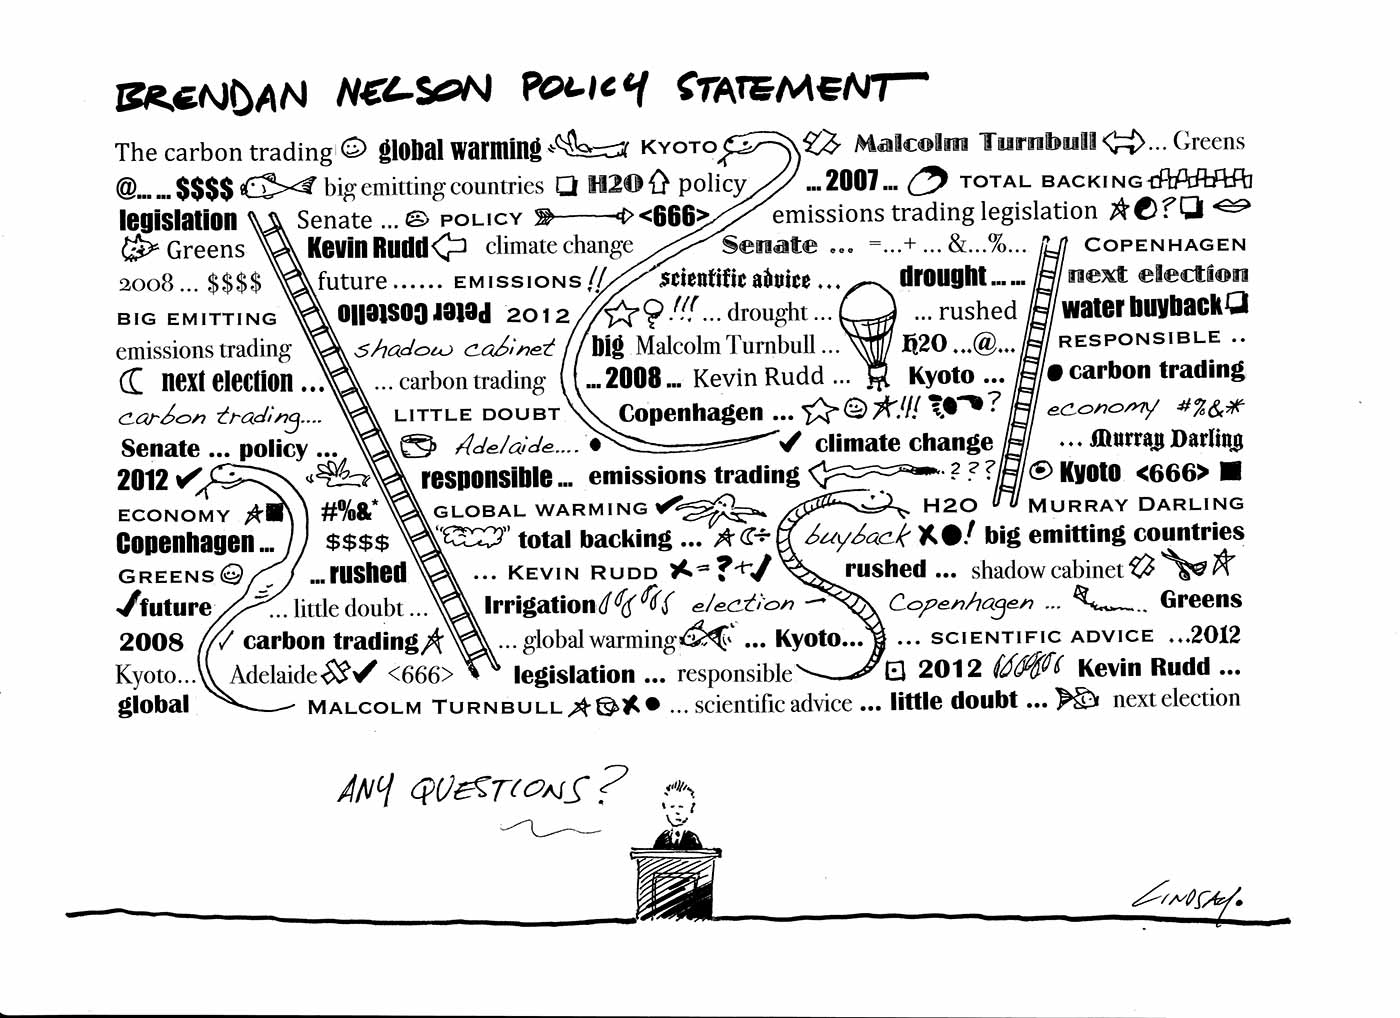 Black and white cartoon showing Brendan Nelson standing behind a small lectern in the foreground and asking 'Any Questions?' Behind him looms a large wall of words and symbols, including several snakes and ladders. Many words, including 'carbon trading', 'Kevin Rudd', 'Malcolm Turnbull', 'Senate', and 'scientific advice' appear several times. - click to view larger image